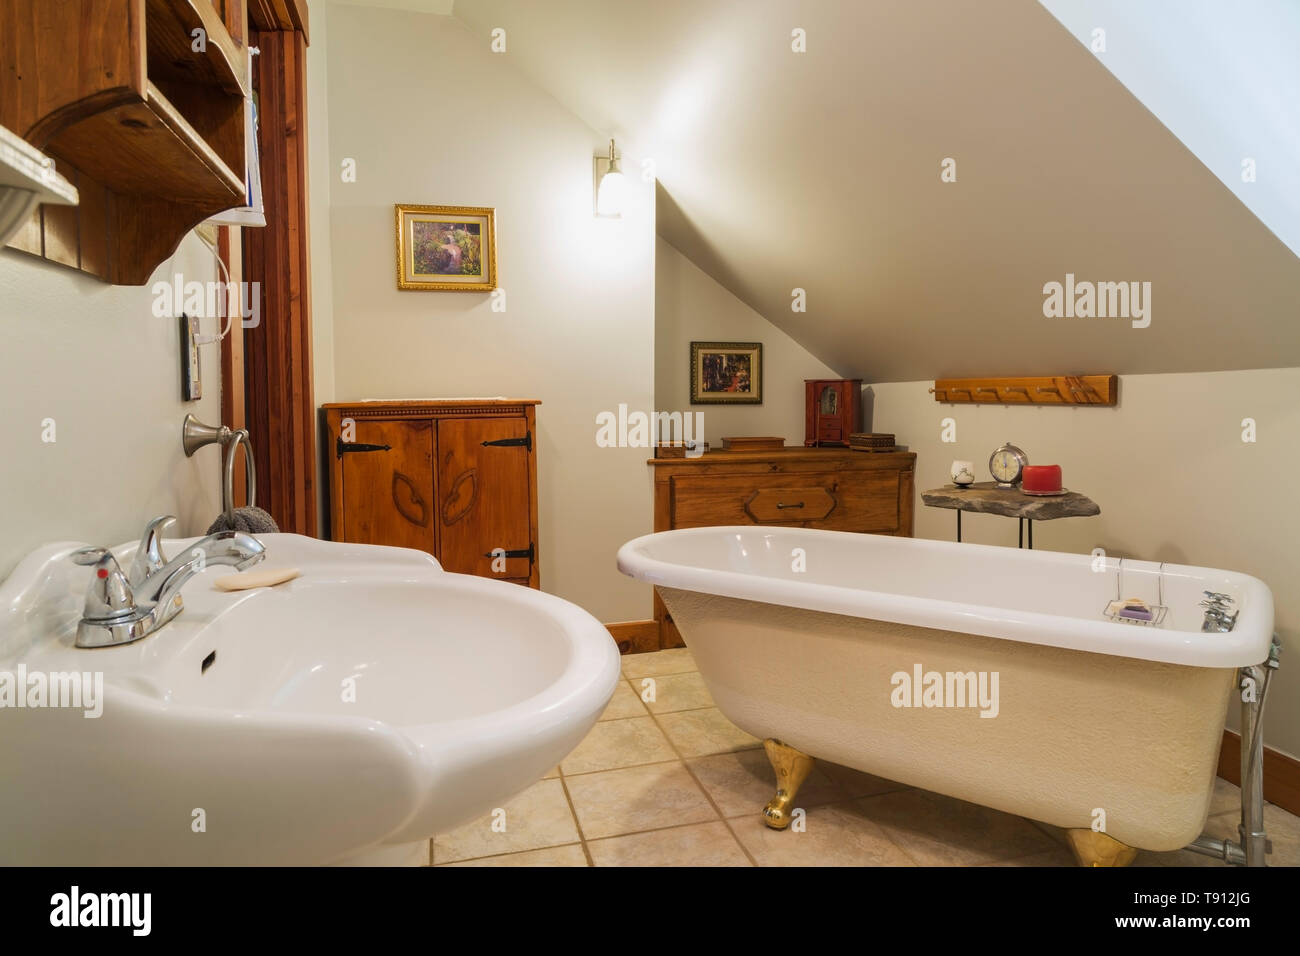 White pedestal wash sink, claw foot bathtub and antique pinewood cabinets in en suite with ceramic tiles on upstairs floor inside a 1990s contemporary - Stock Image